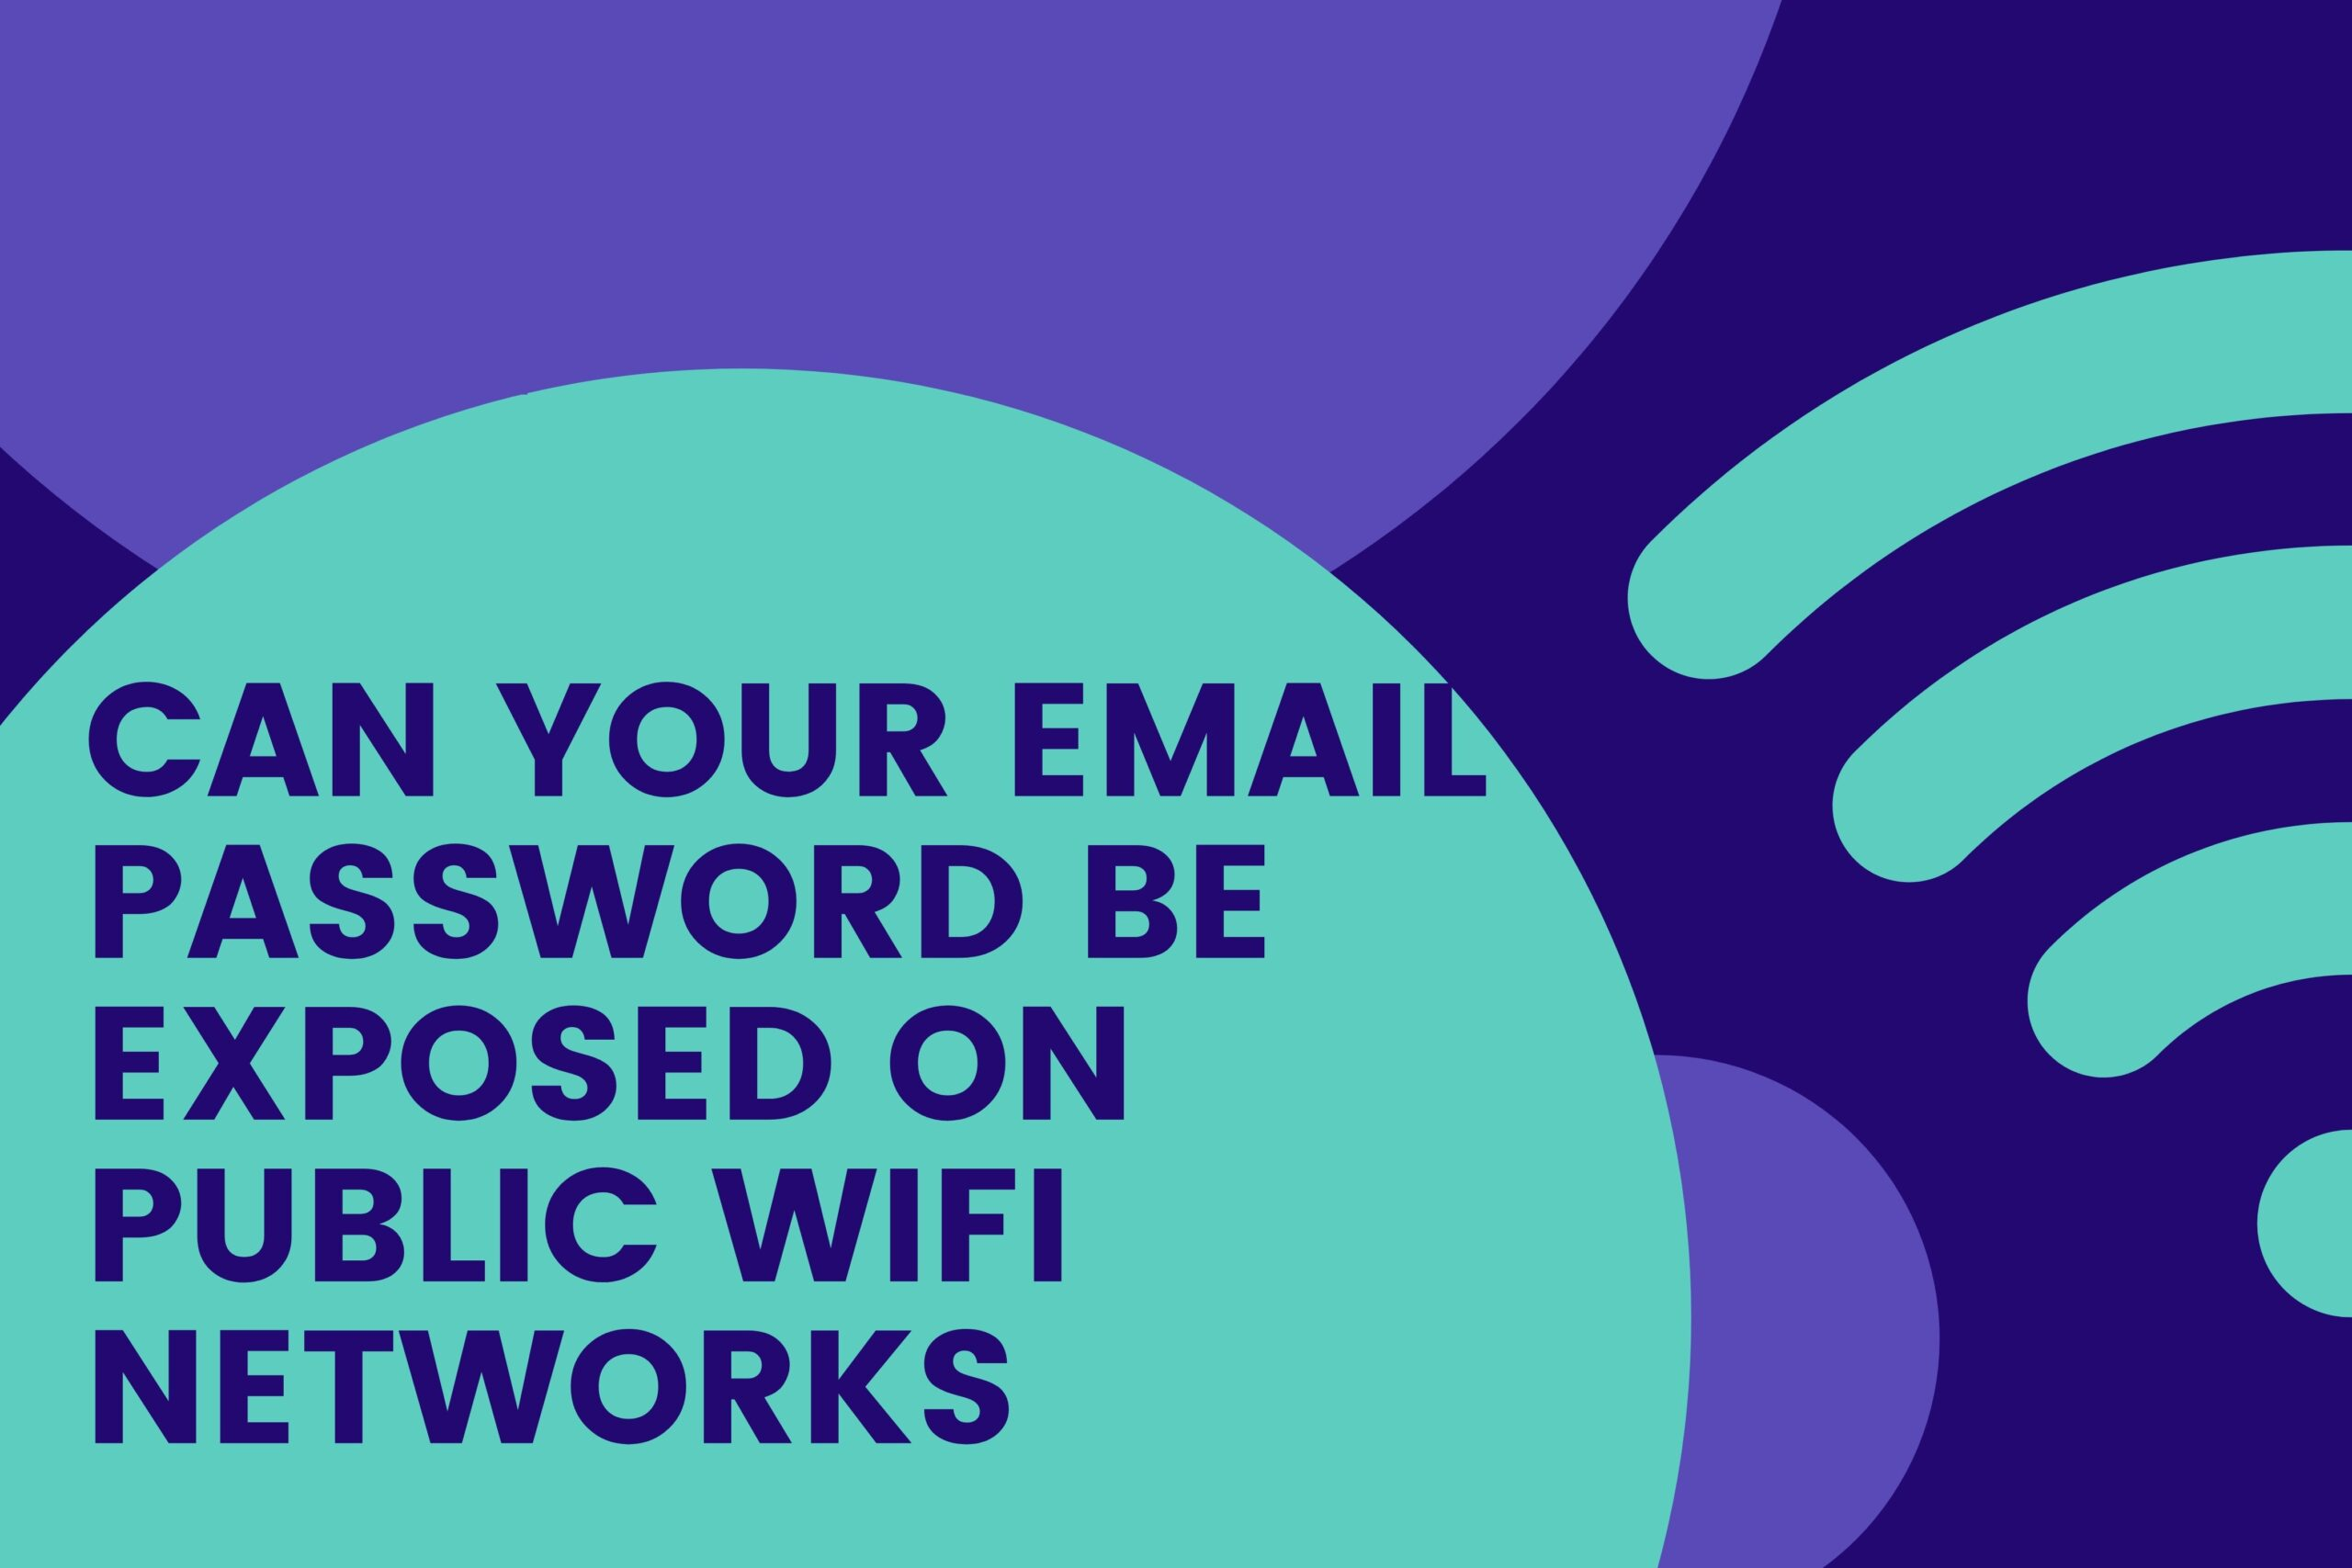 CAN YOUR EMAIL PASSSWORD BE EXPOSED